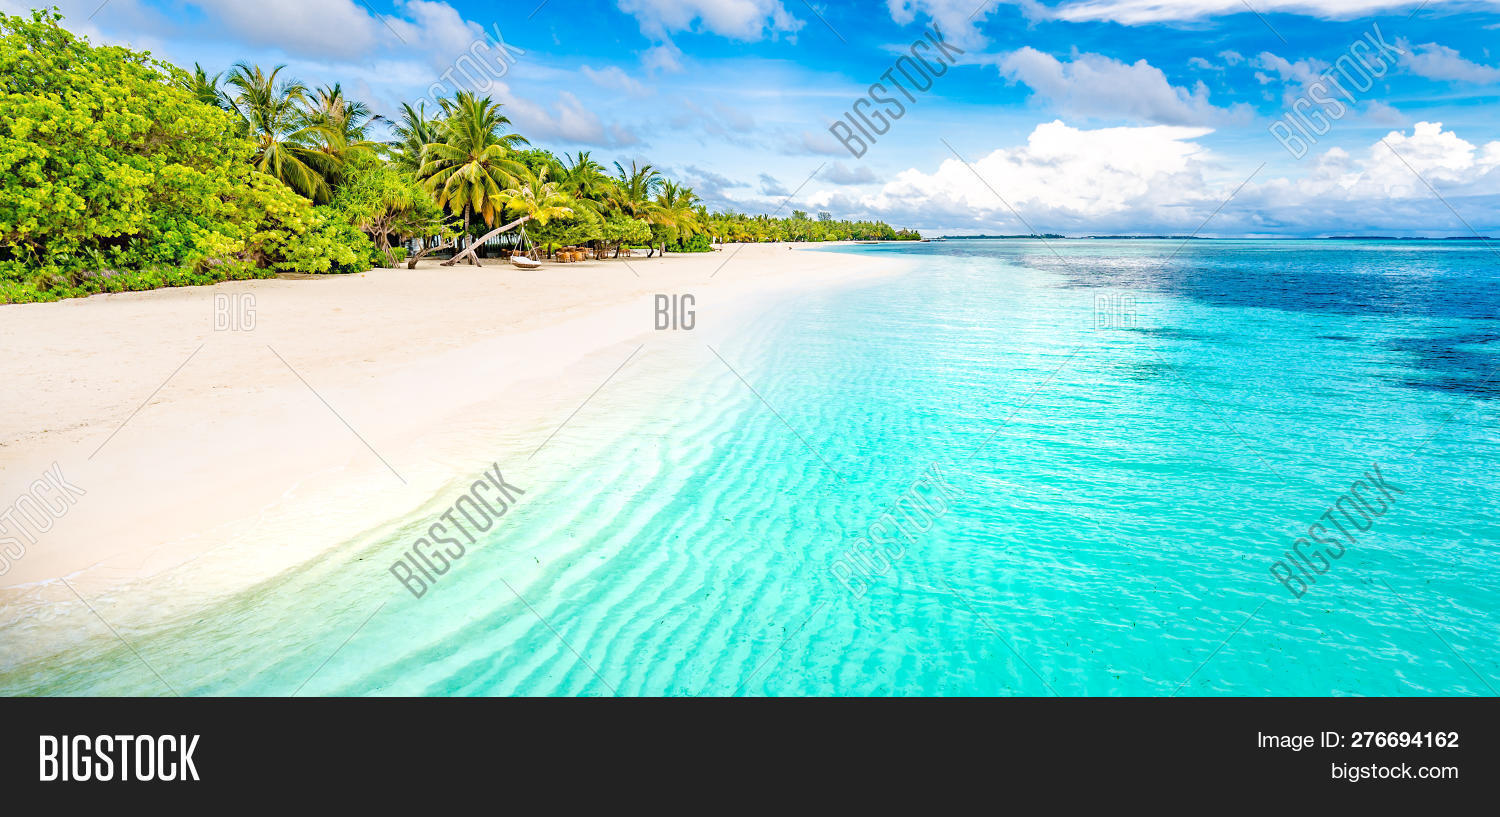 Tranquil Beach Scene Image Photo Free Trial Bigstock